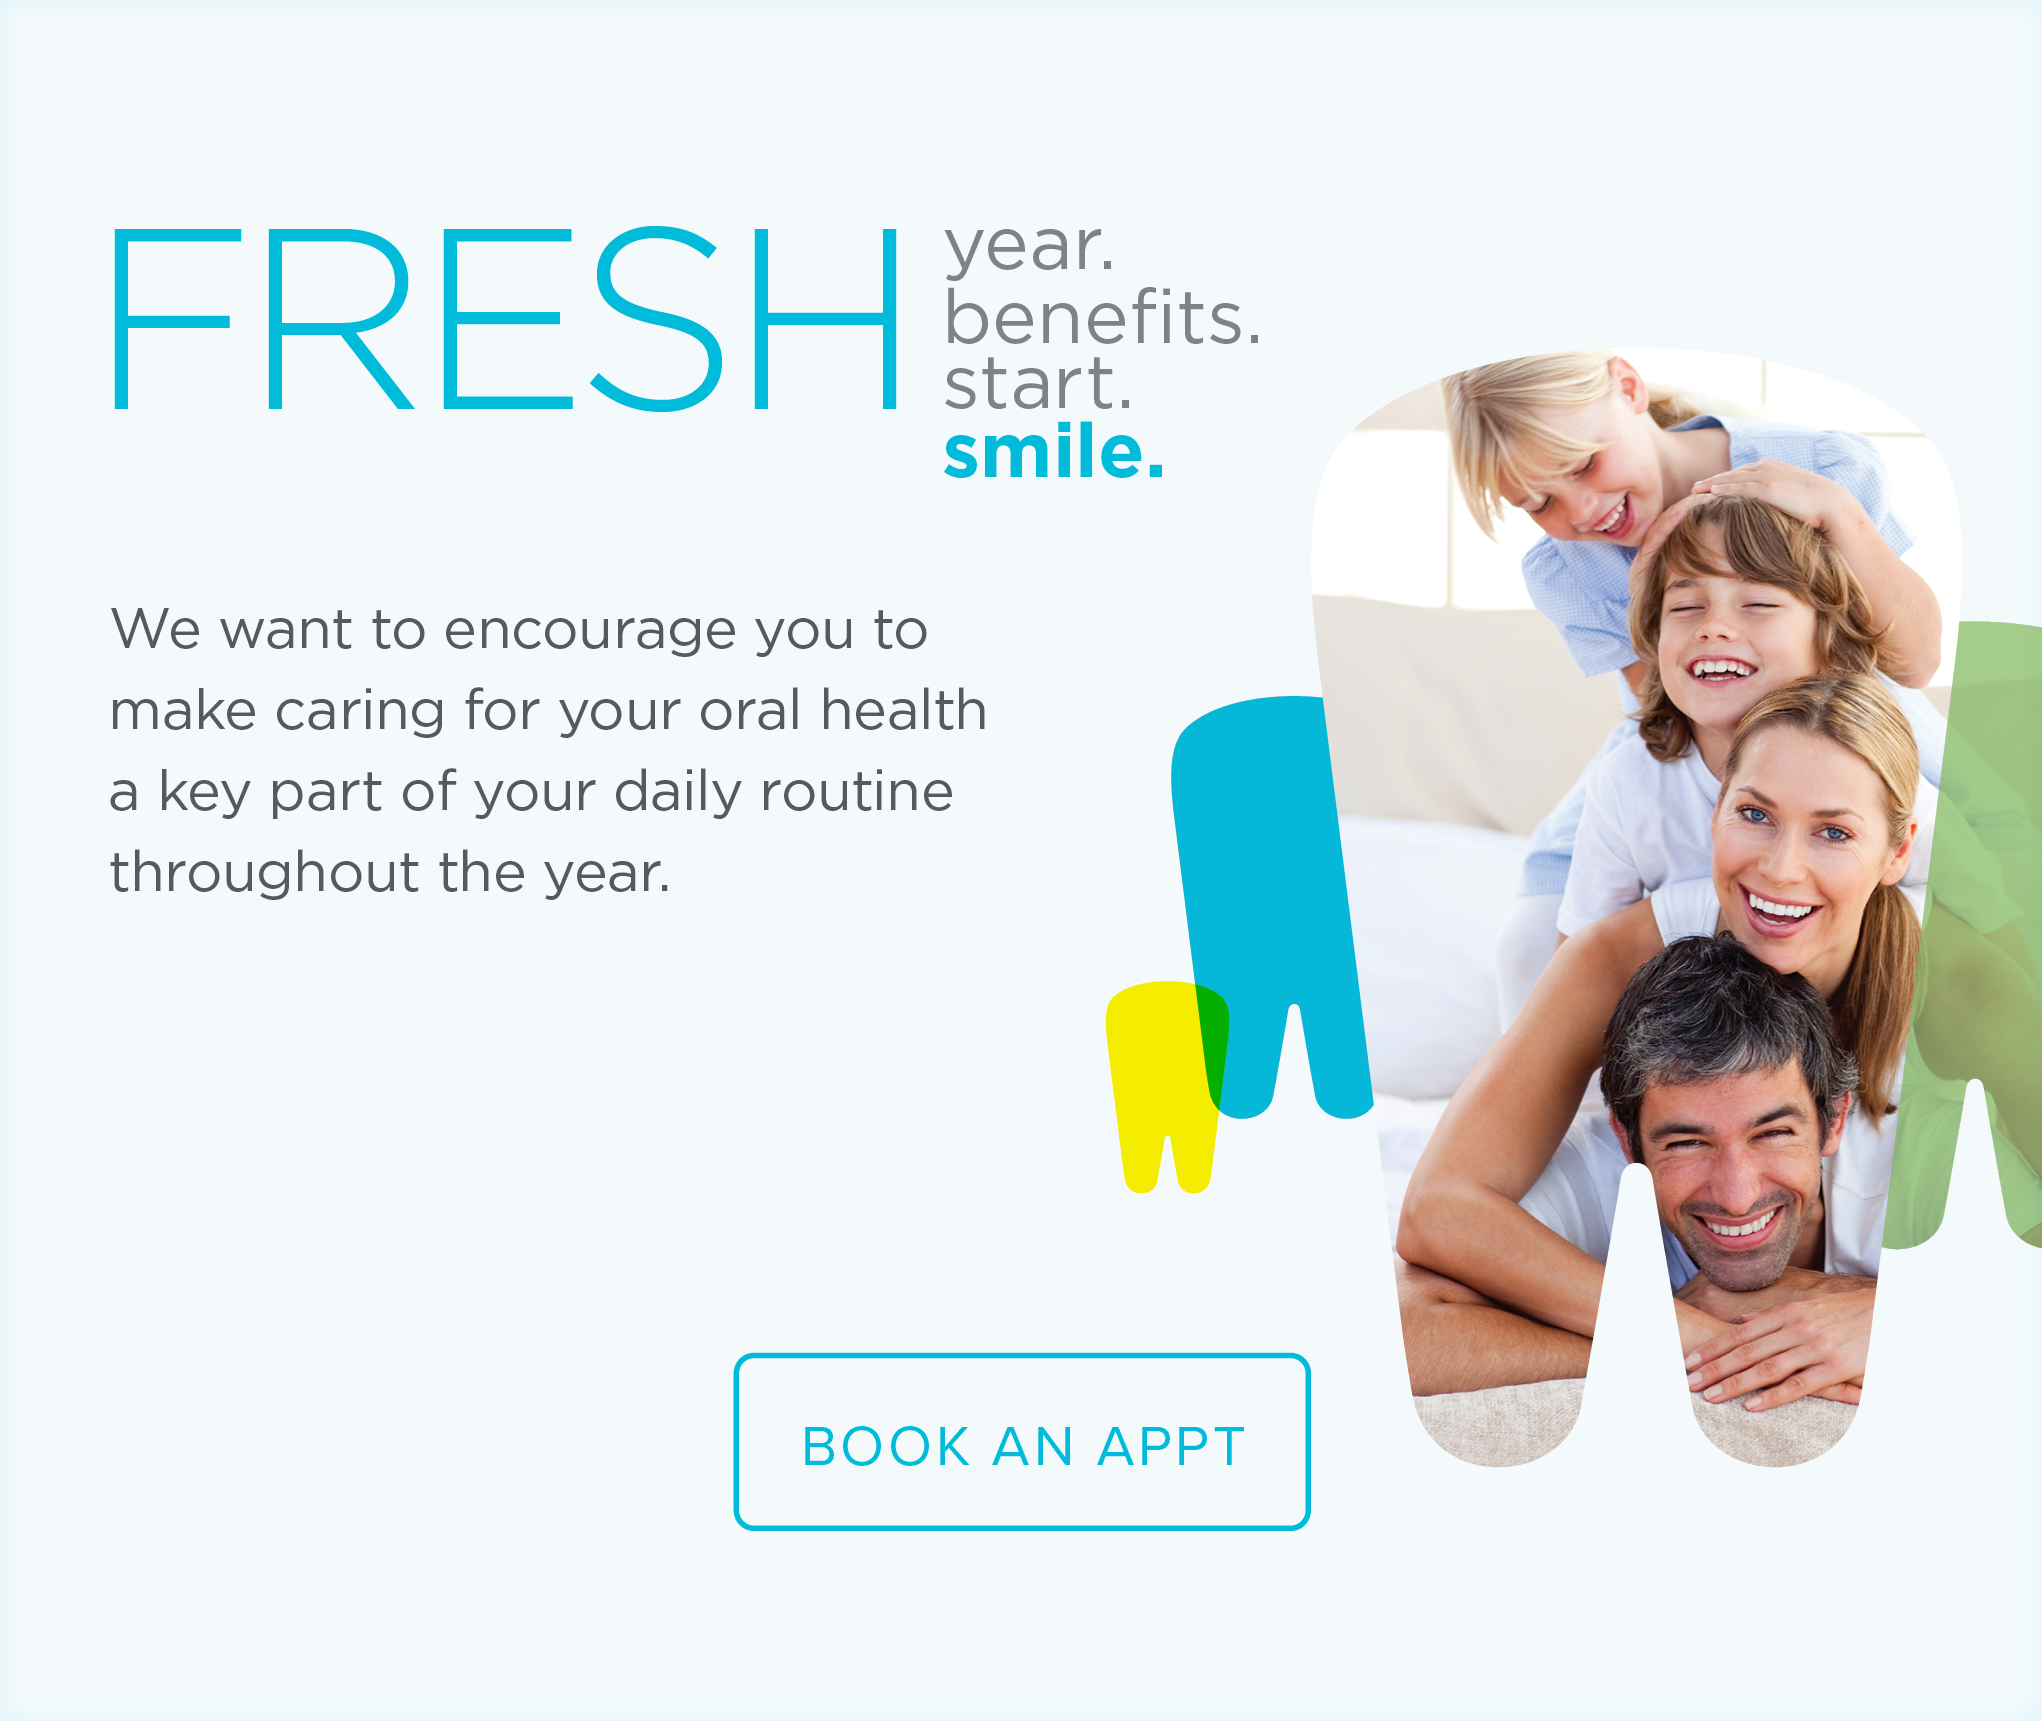 Plano Modern Dentistry - Make the Most of Your Benefits